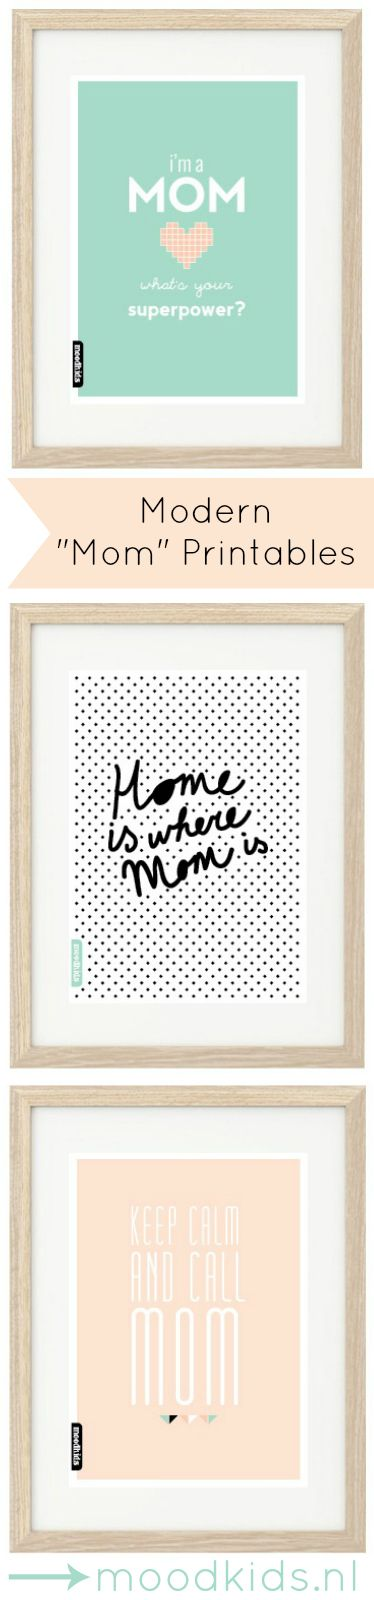 Modern Mother's Day Printables by Moodkids!